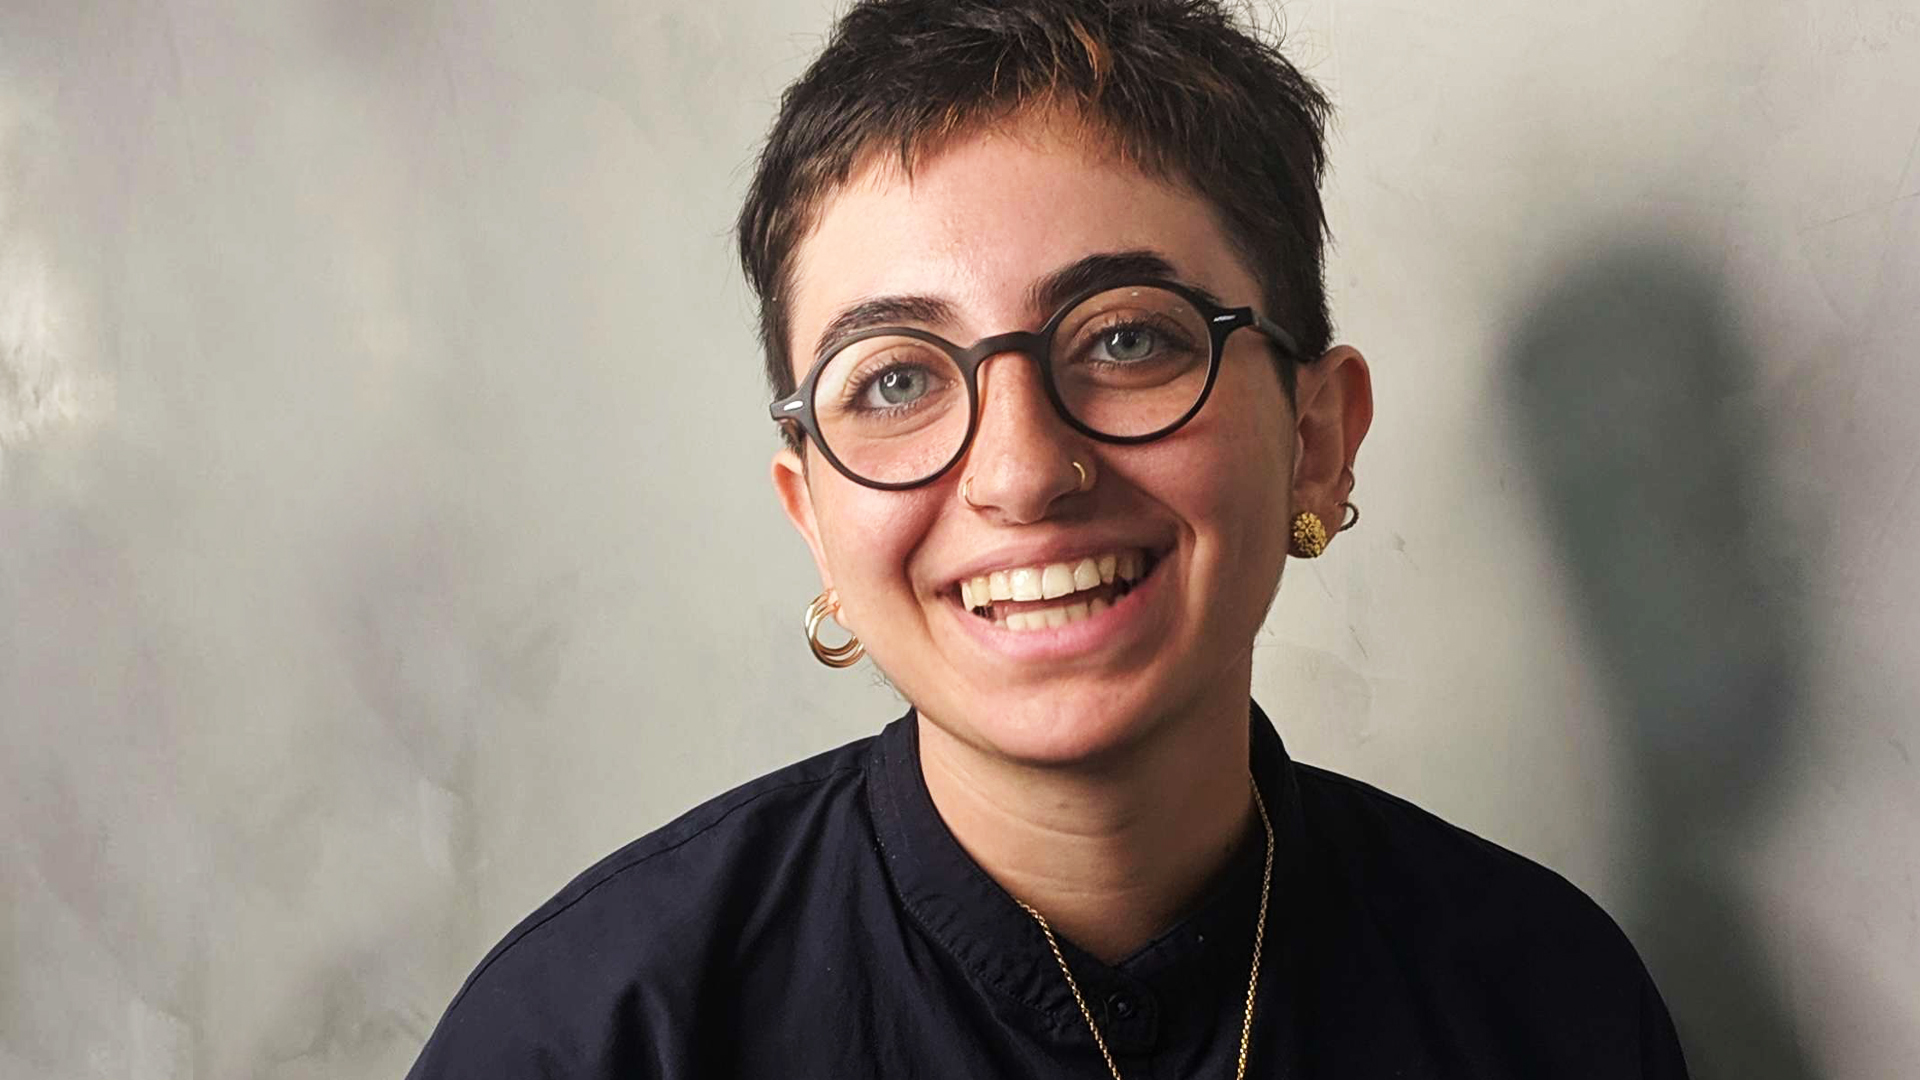 Image of a smiling person, with short dark hair and glasses. The guest presenter of 3CR Spoken Word, Lujayn Hourani